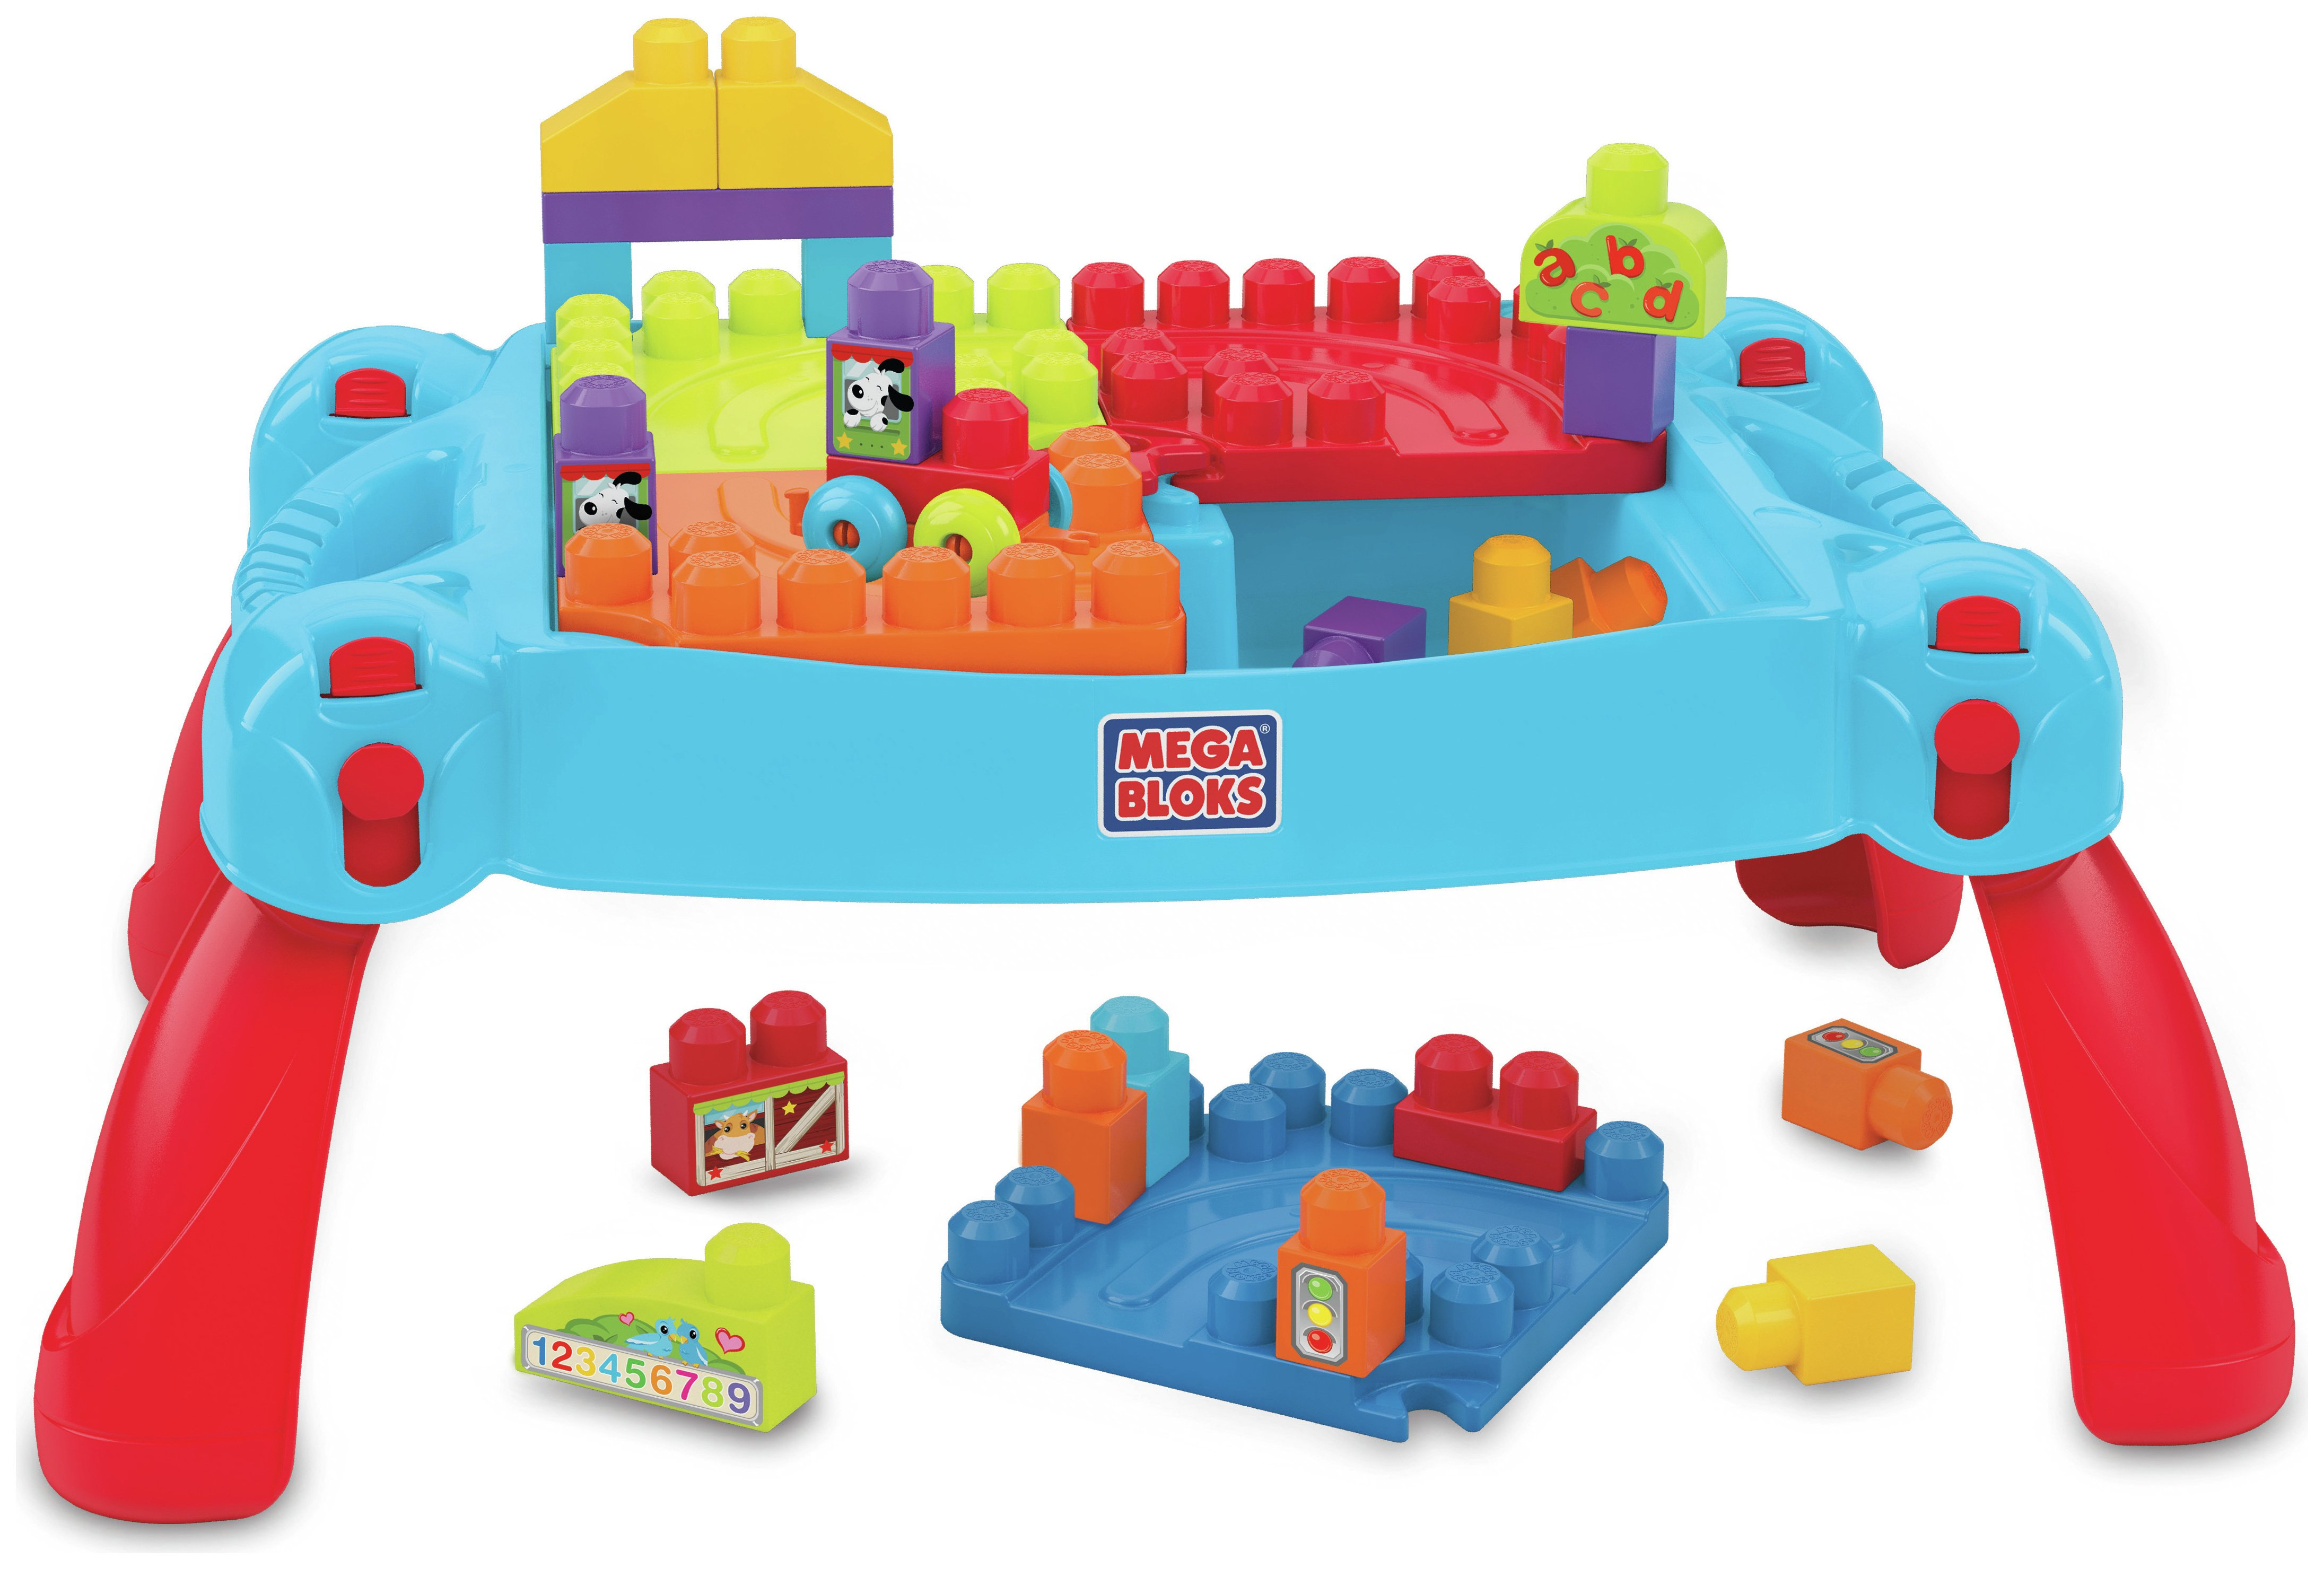 Mega Bloks - First Builders Build 'n' Learn Table